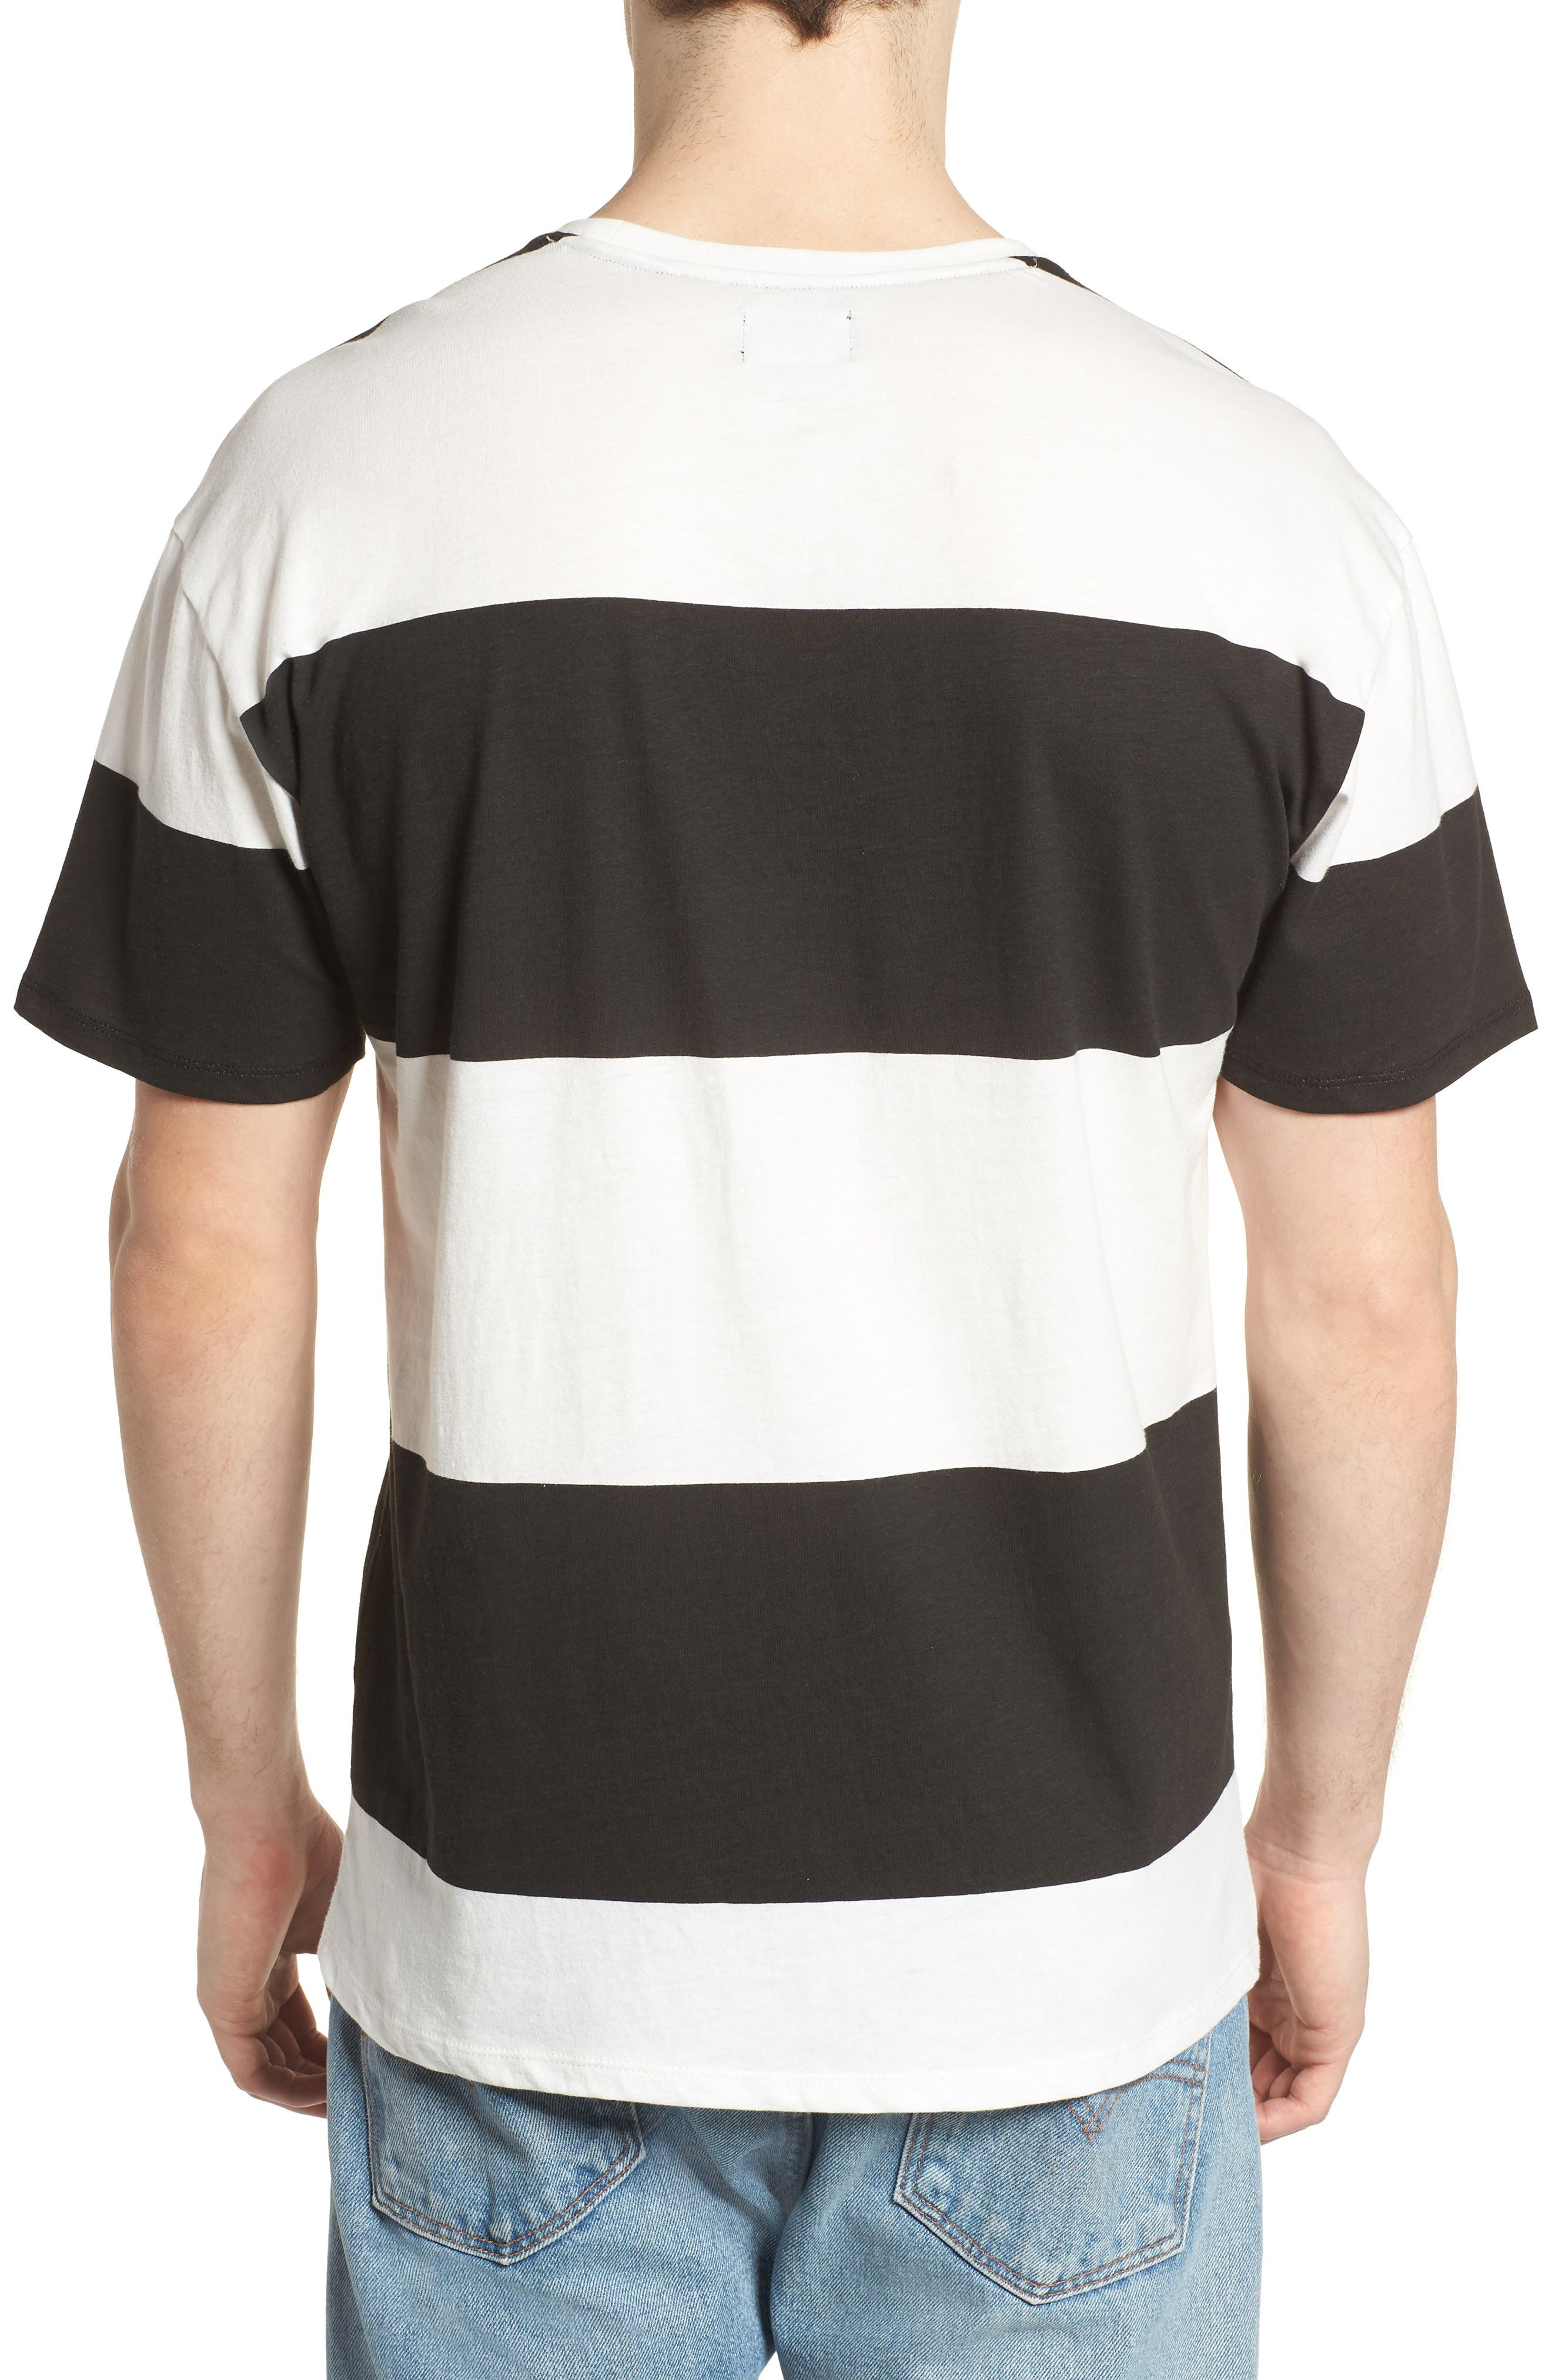 Rugby T-Shirt,                             Alternate thumbnail 2, color,                             133